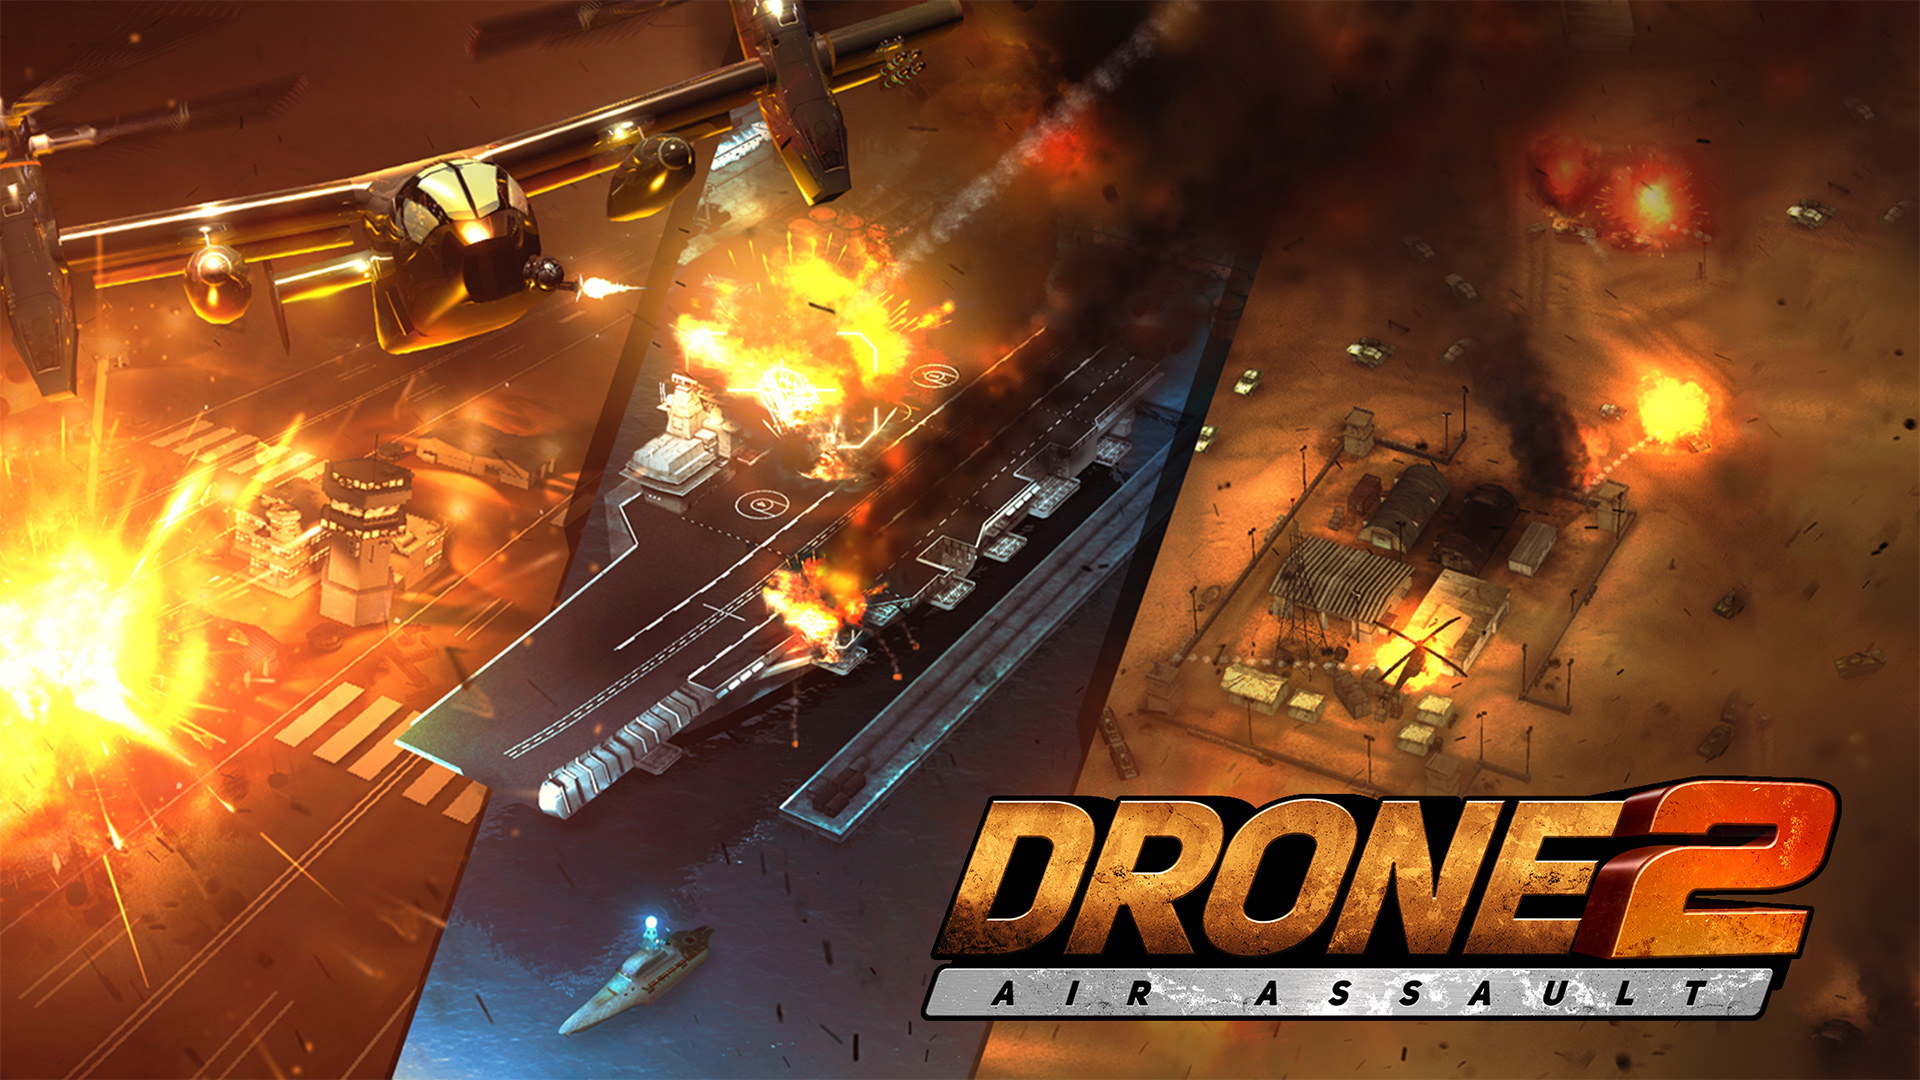 Drone 2 Air Assault screenshot 11